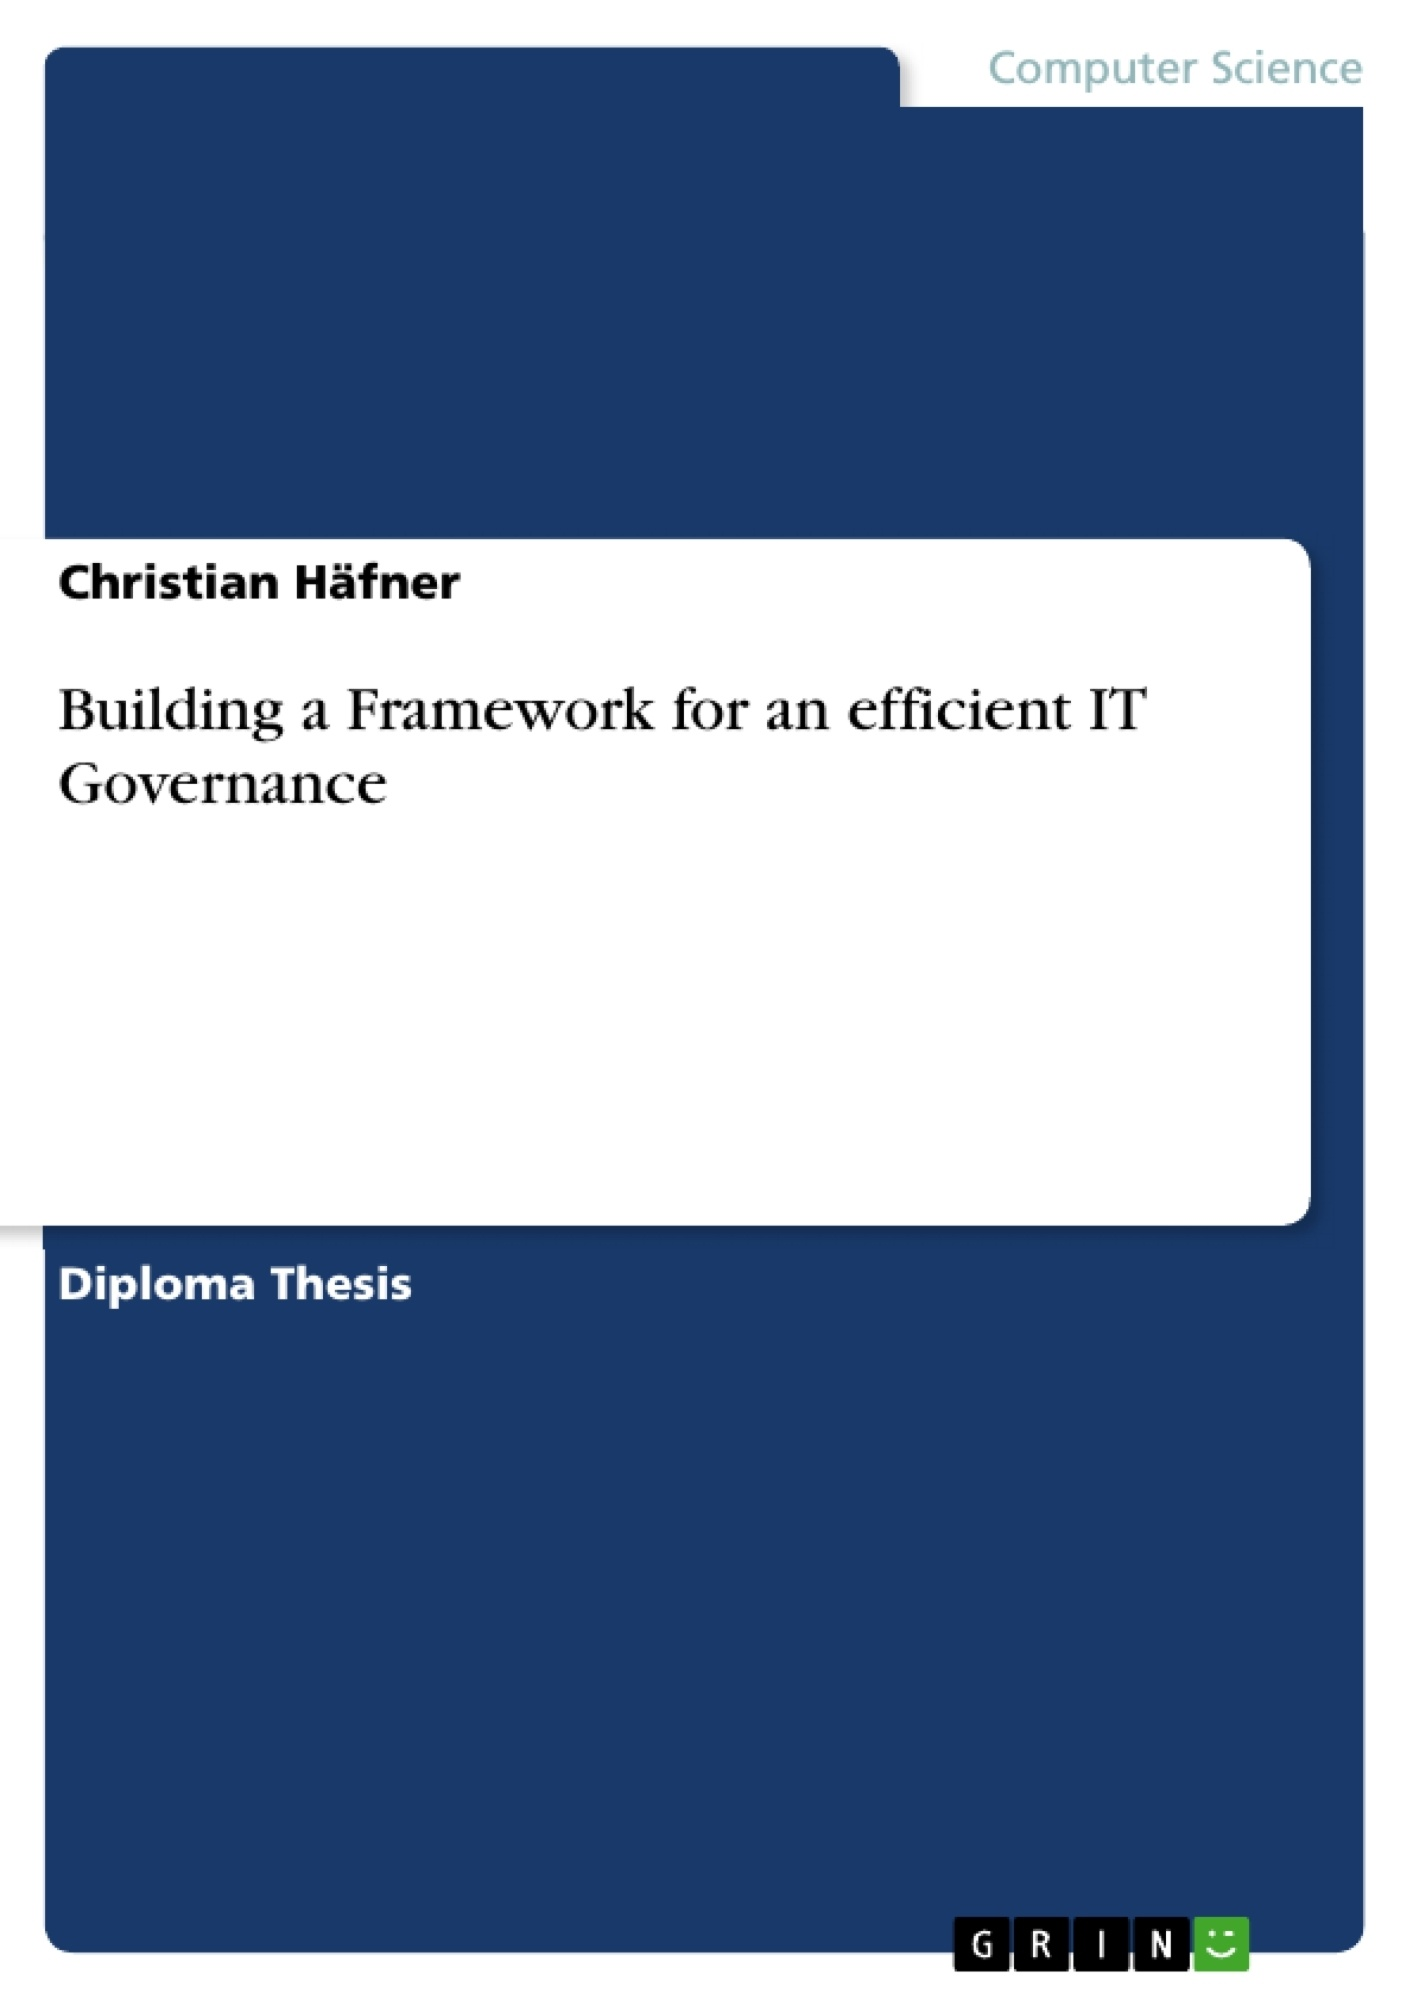 It Governance Peter Weill Pdf